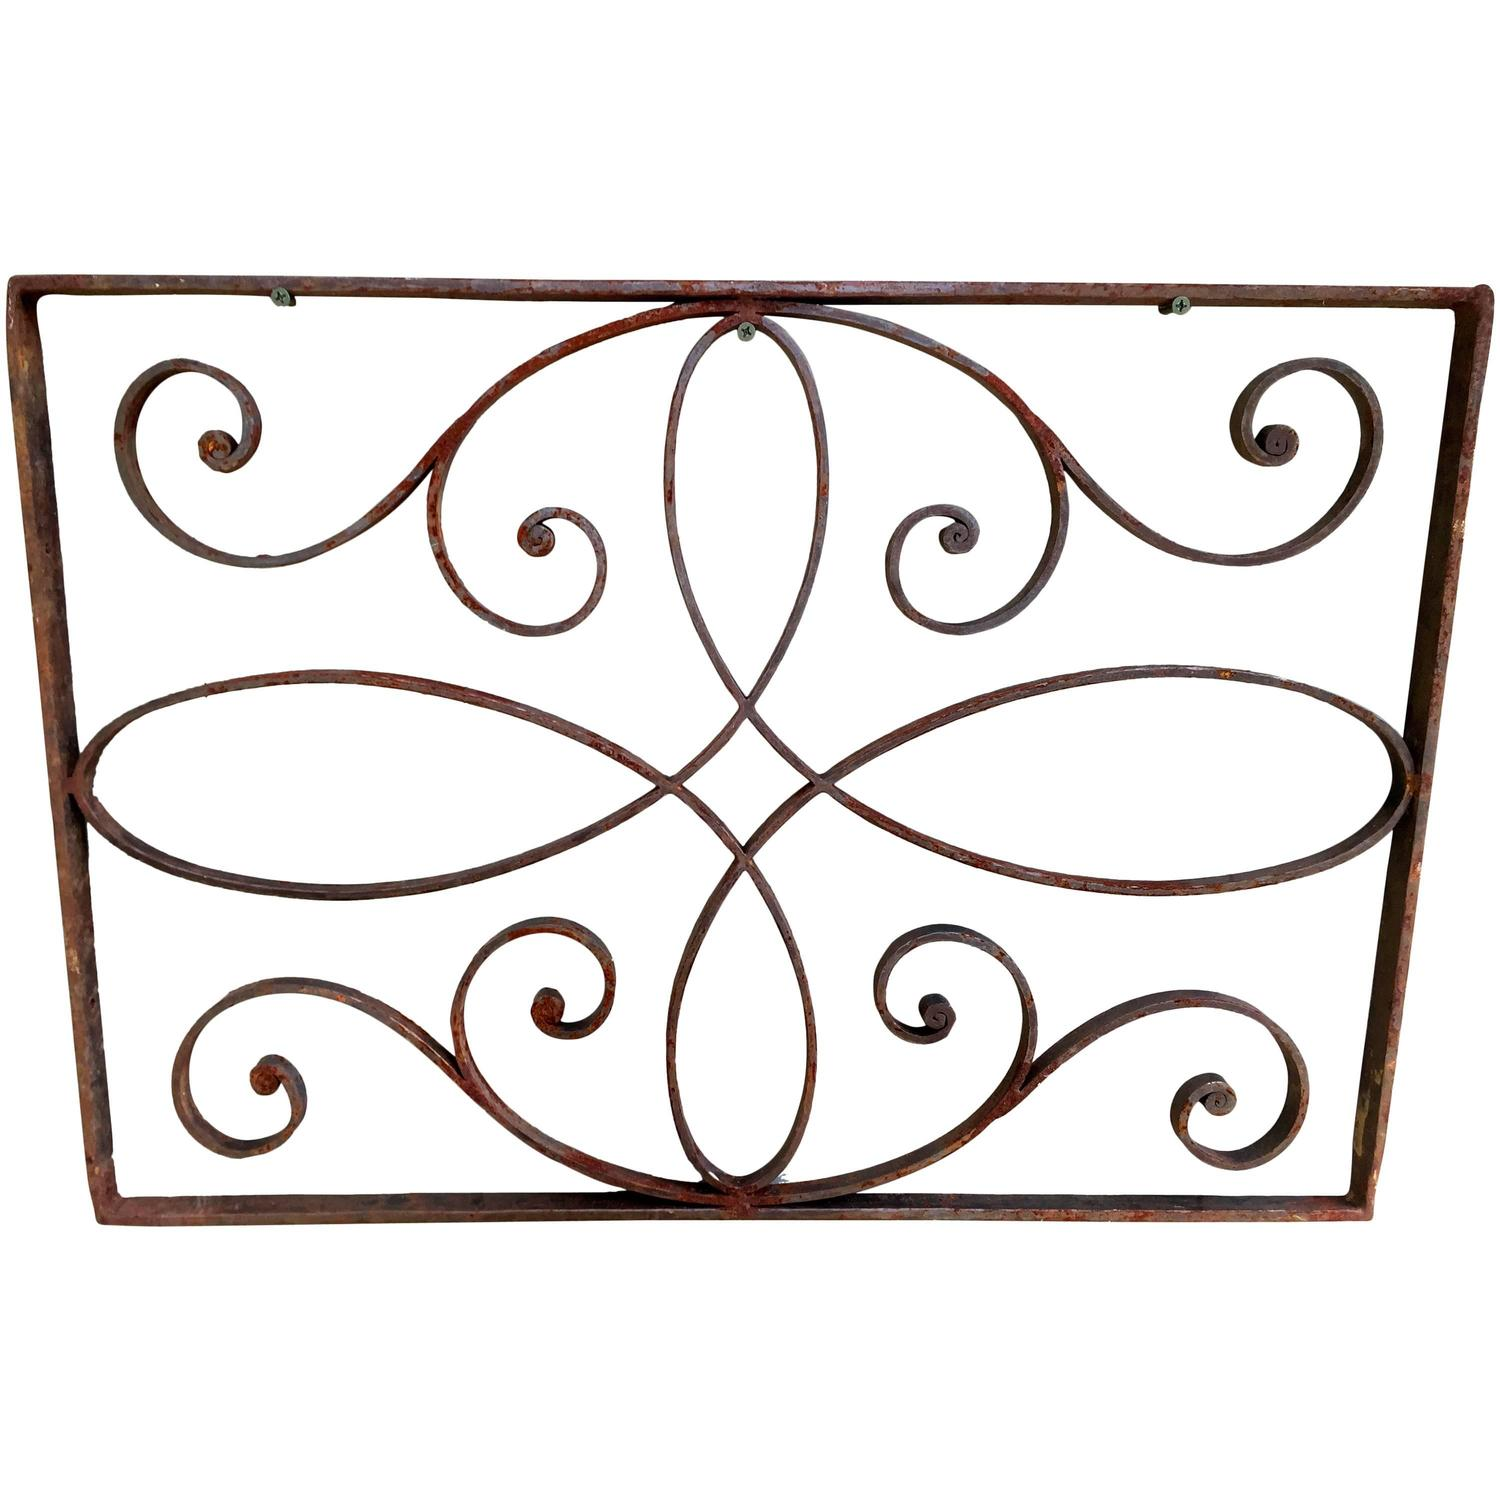 bronze and wrought iron decorative panel mirror for sale. Black Bedroom Furniture Sets. Home Design Ideas